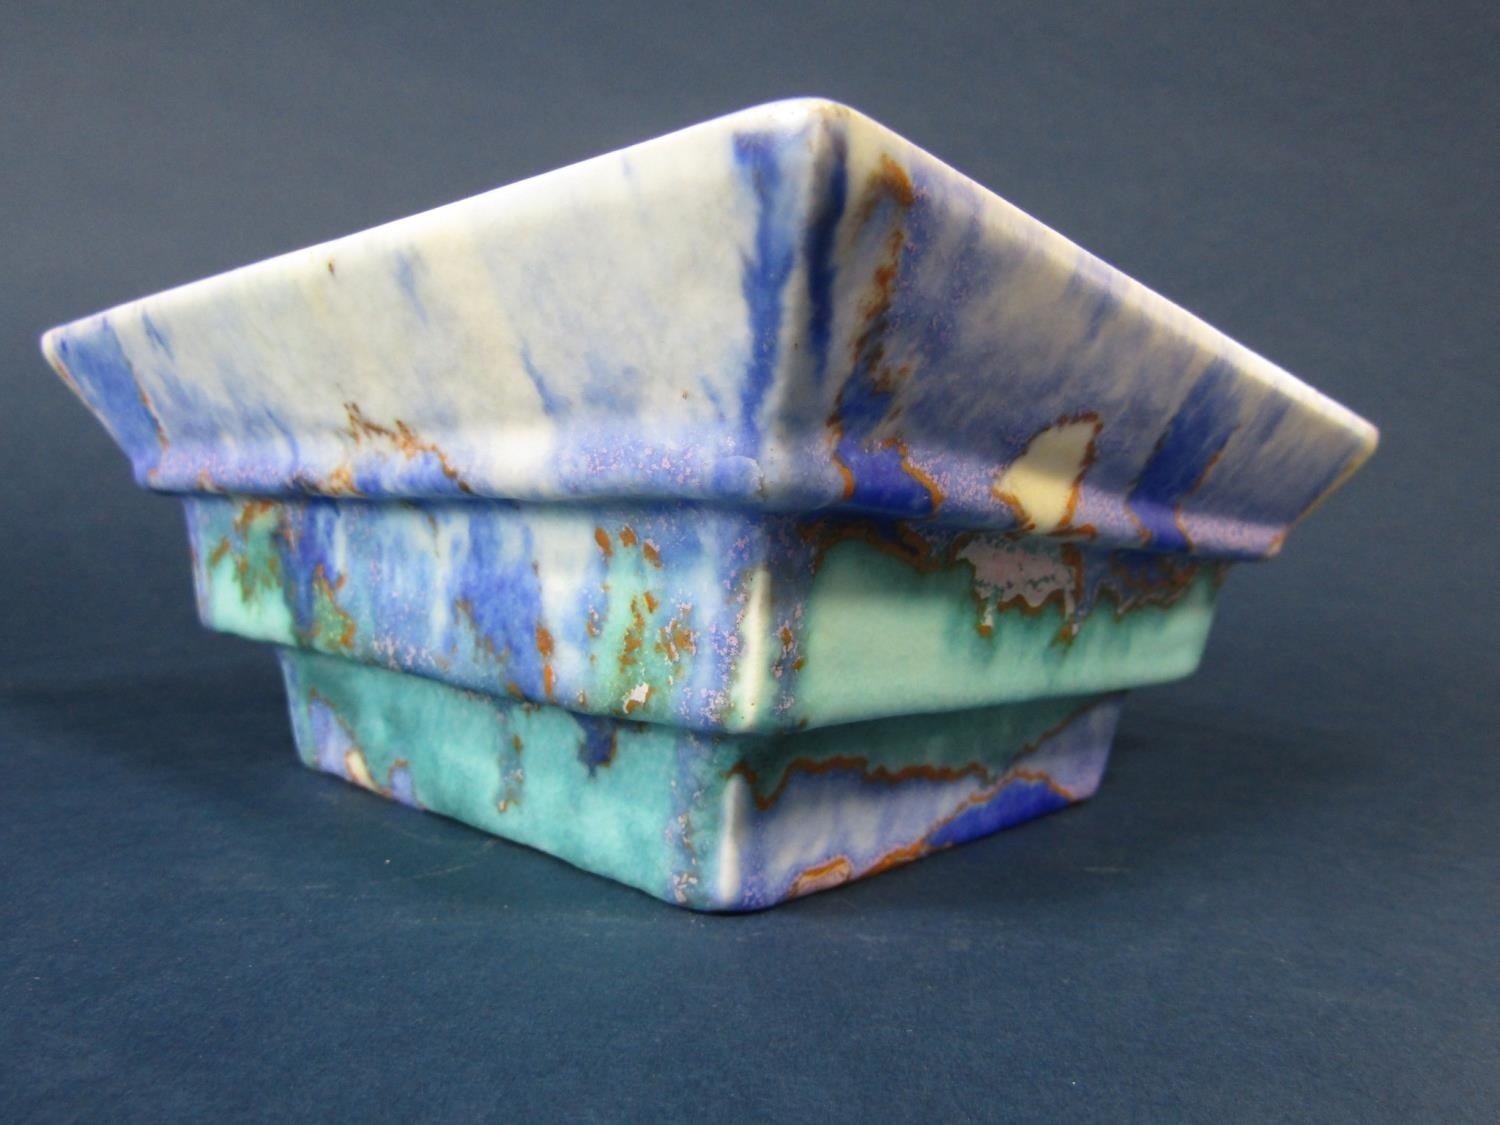 A Clarice Cliff Bizarre bowl of four sided stepped form with mottled turquoise blue and gold